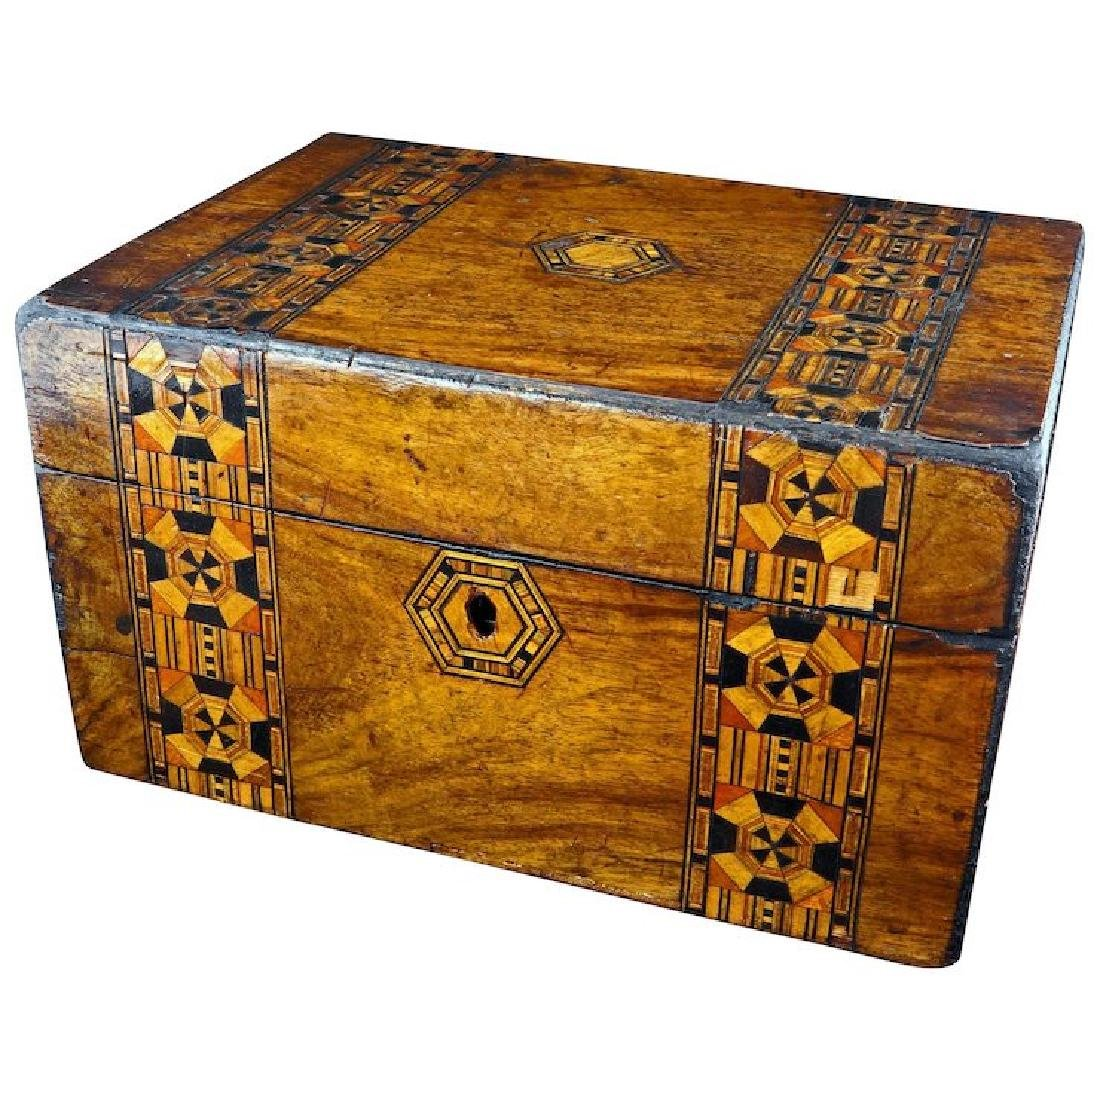 Tunbridge marquetry wood box 19th century